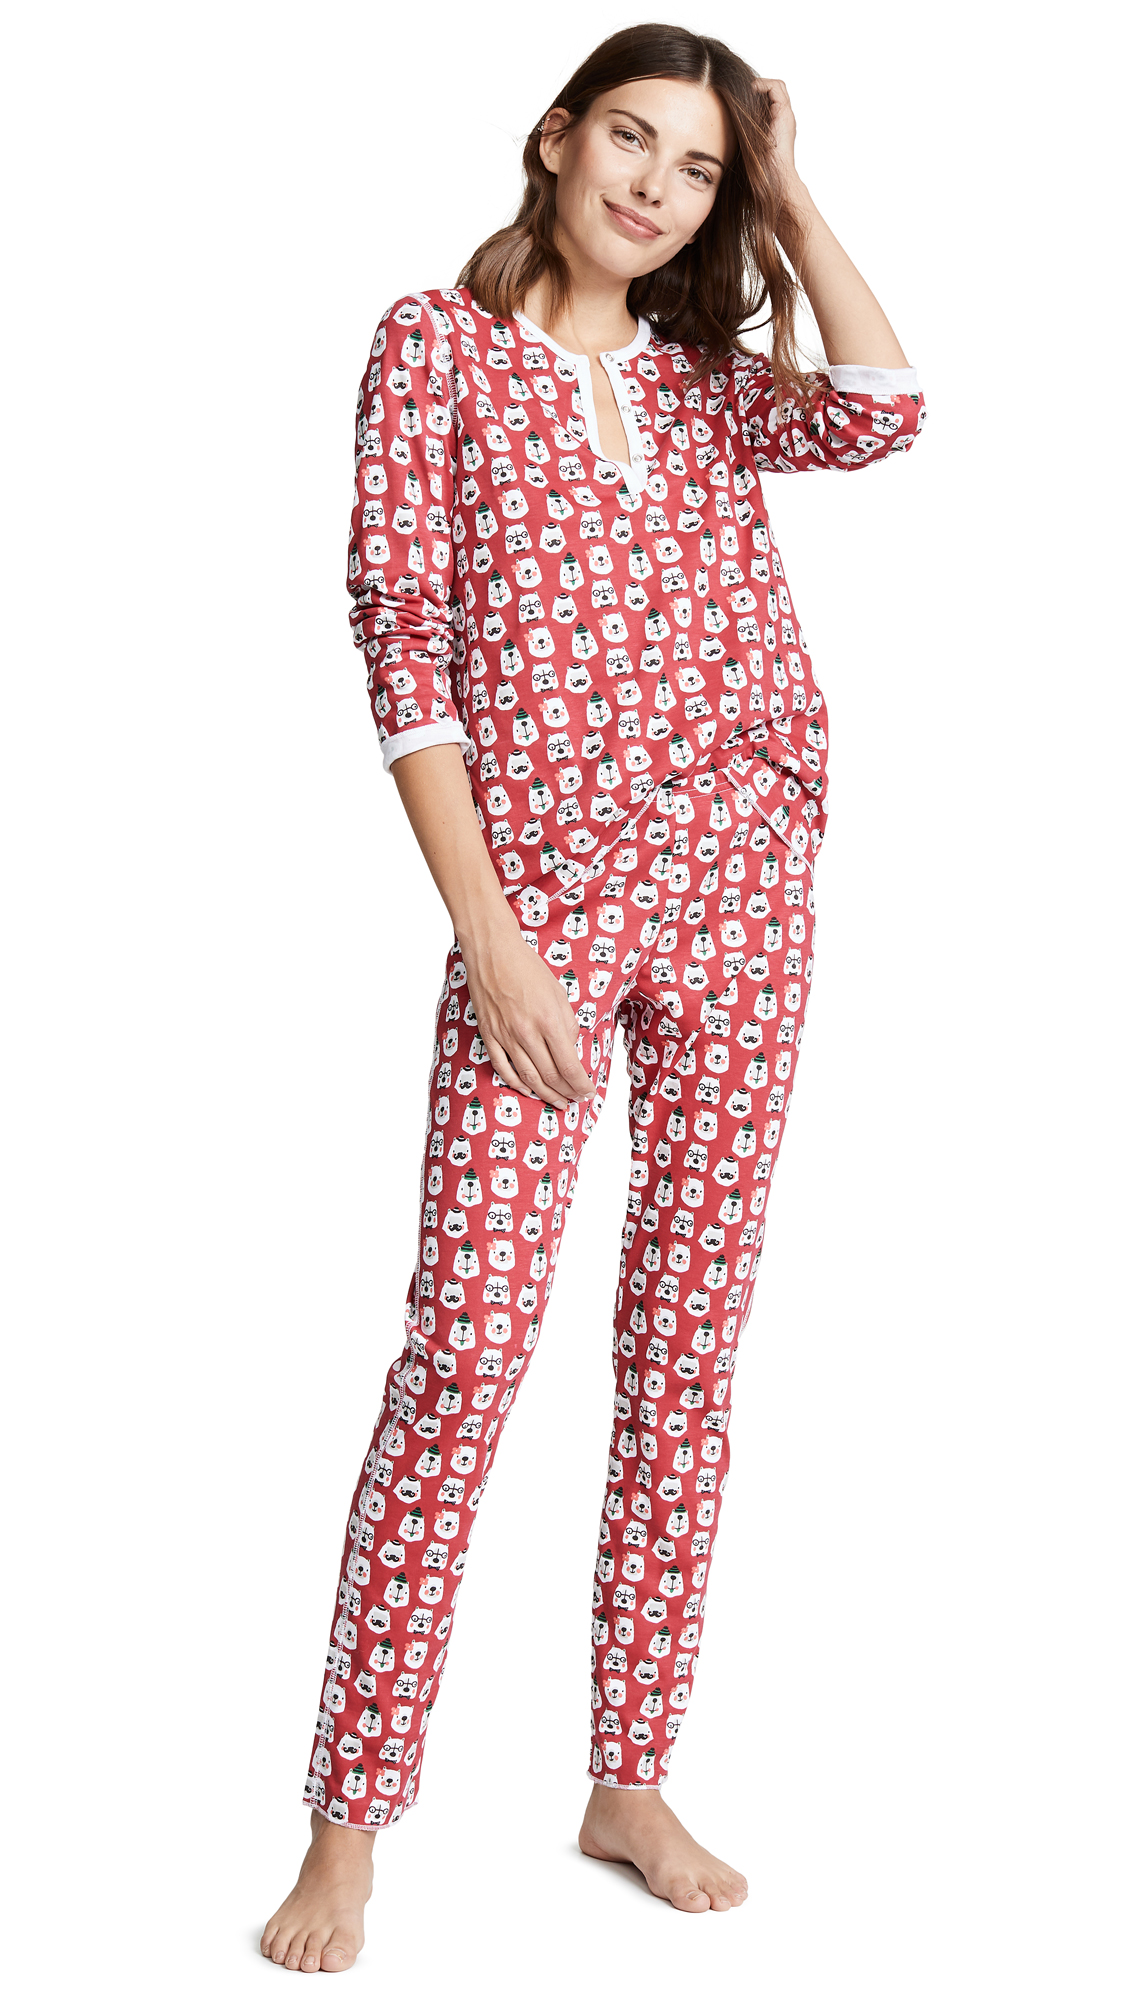 ROLLER RABBIT Bearry Holidays Pajamas in Red